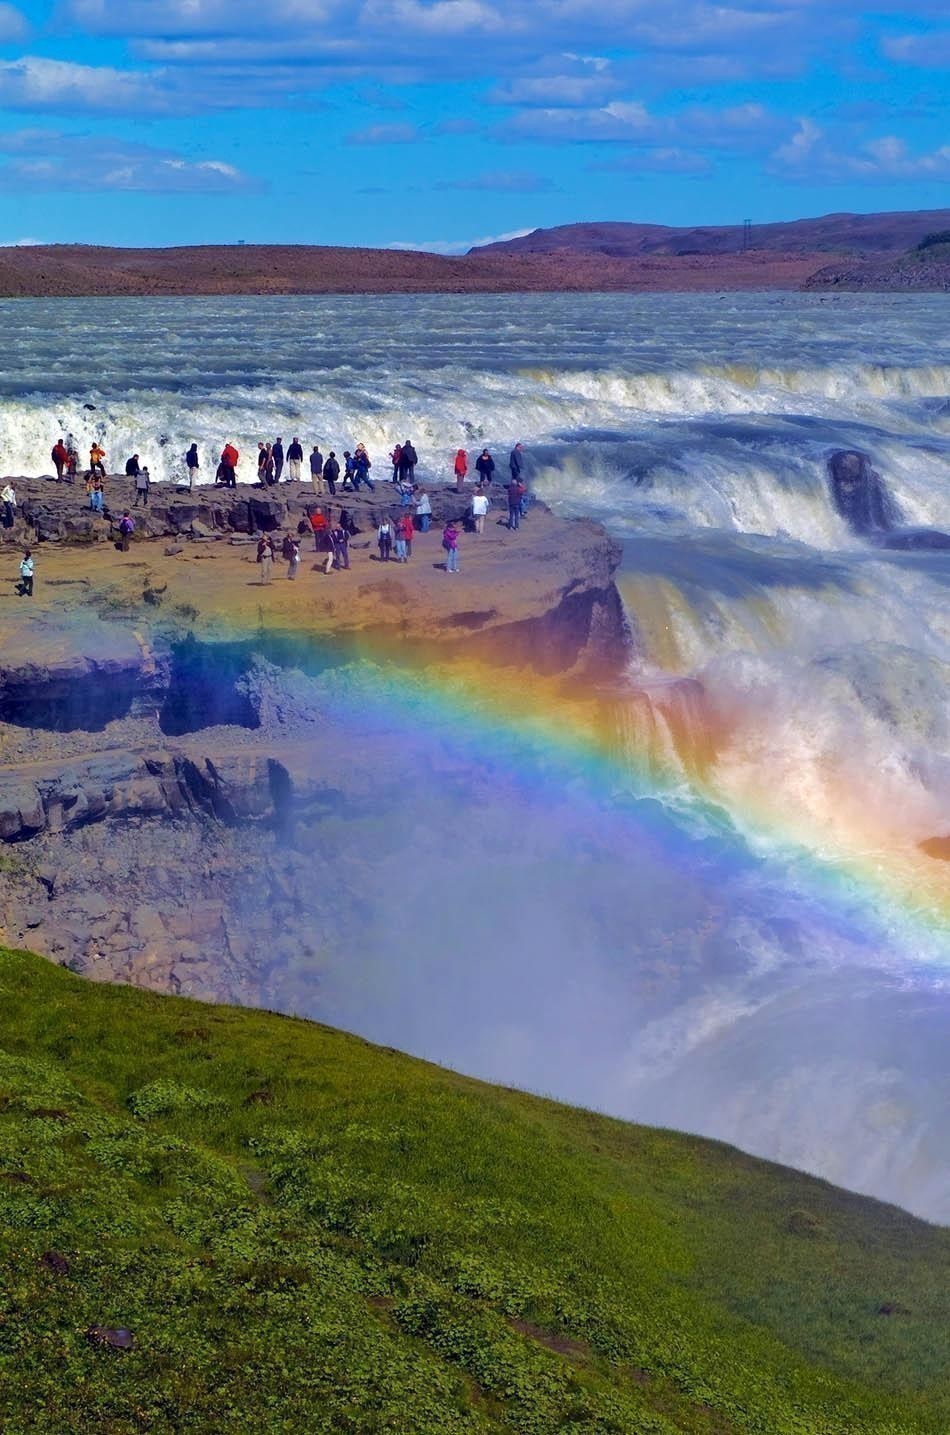 Amazing Gullfoss Falls and rainbow in Iceland | Iceland Travel Guide